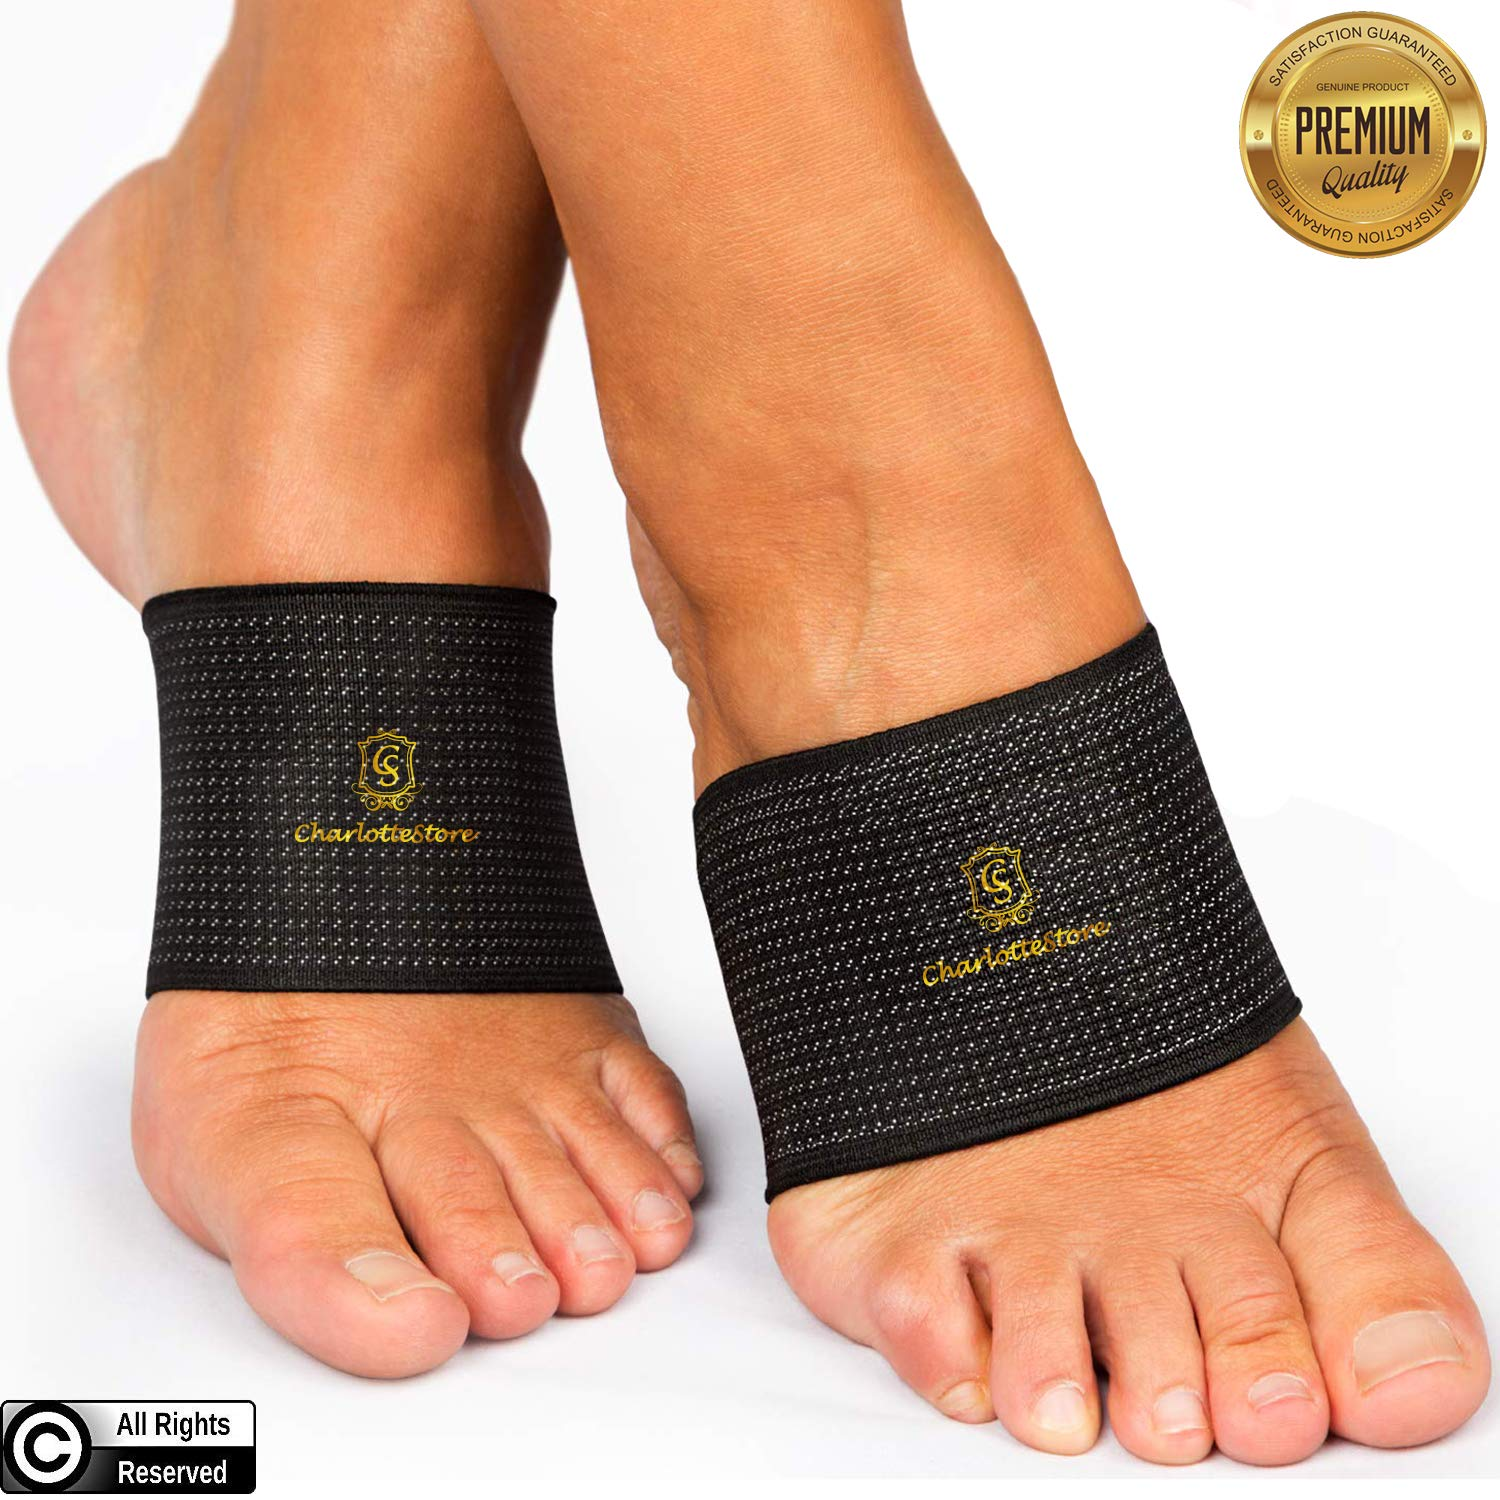 by.RHO Arch Support Plantar Fasciitis | Copper Compression Inserts Sleeves Men Women Heel Pain Relief Cushioned Foot Fallen Arches Achy Feet Problems